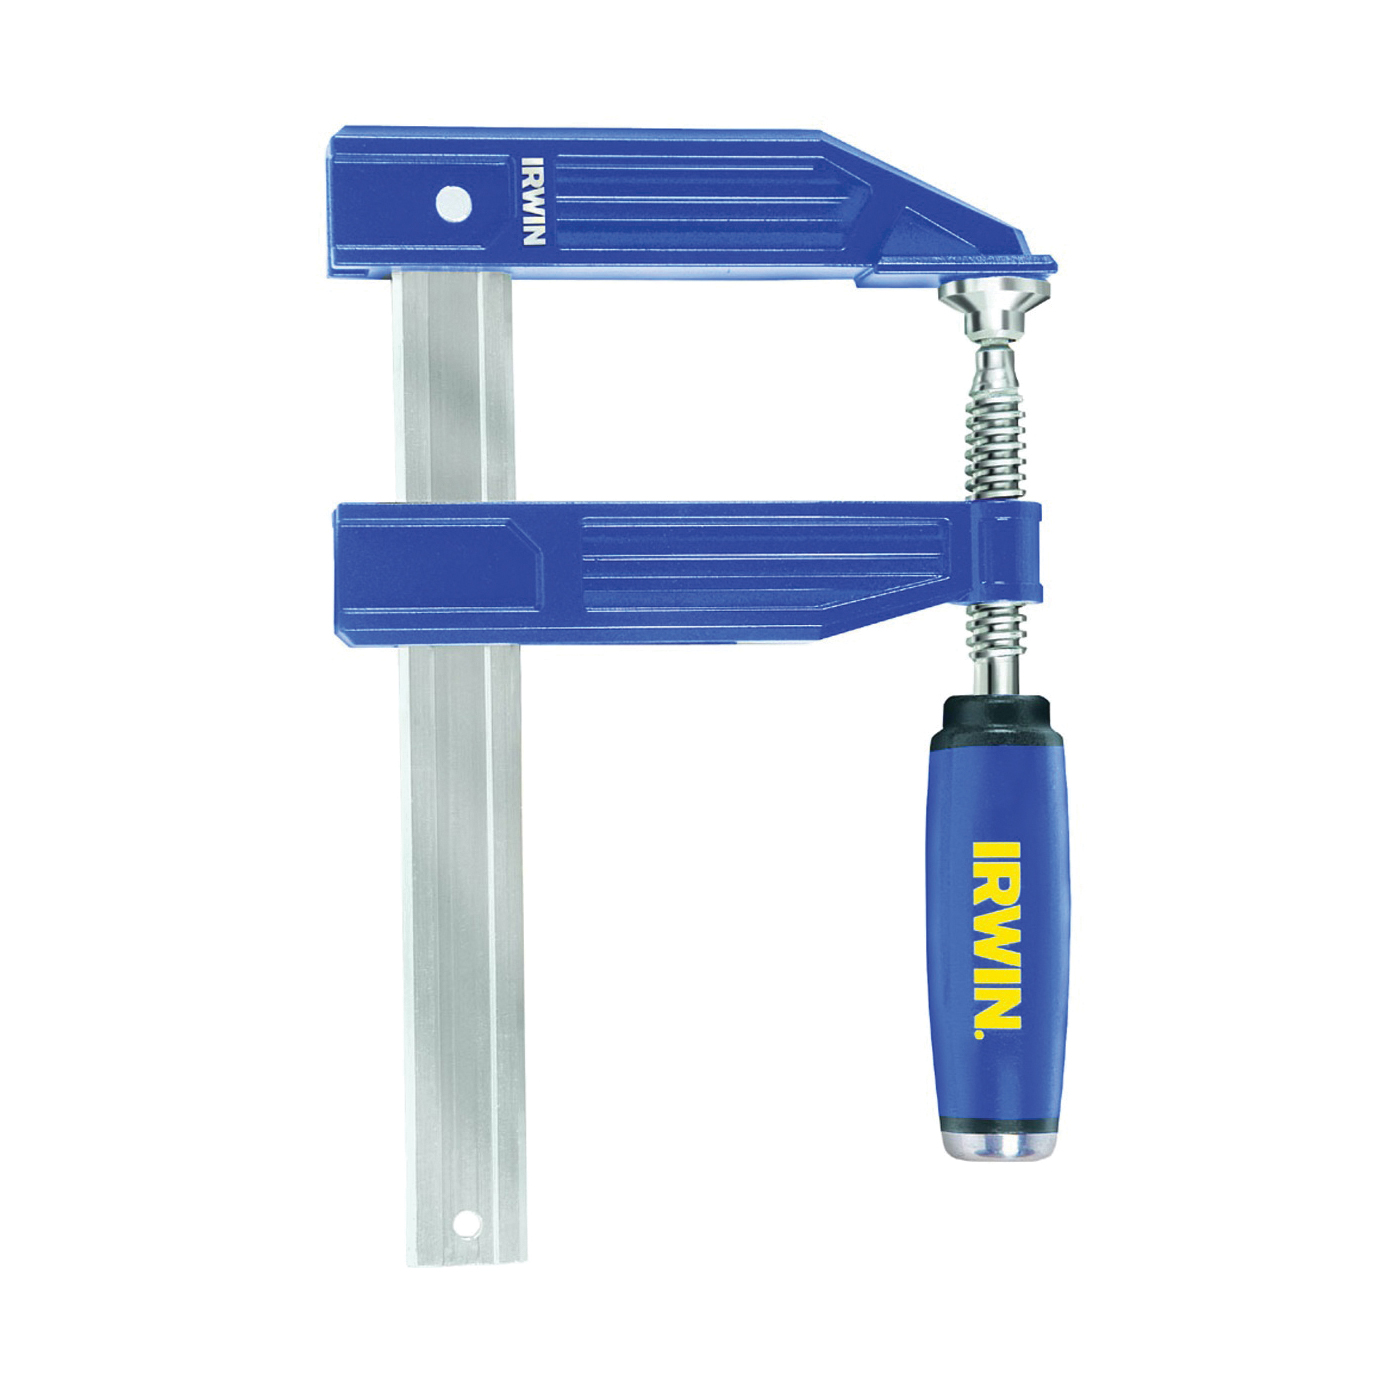 Picture of IRWIN QUICK-GRIP 223212 Heavy-Duty Bar Clamp, 12 in Max Opening Size, 4-7/8 in D Throat